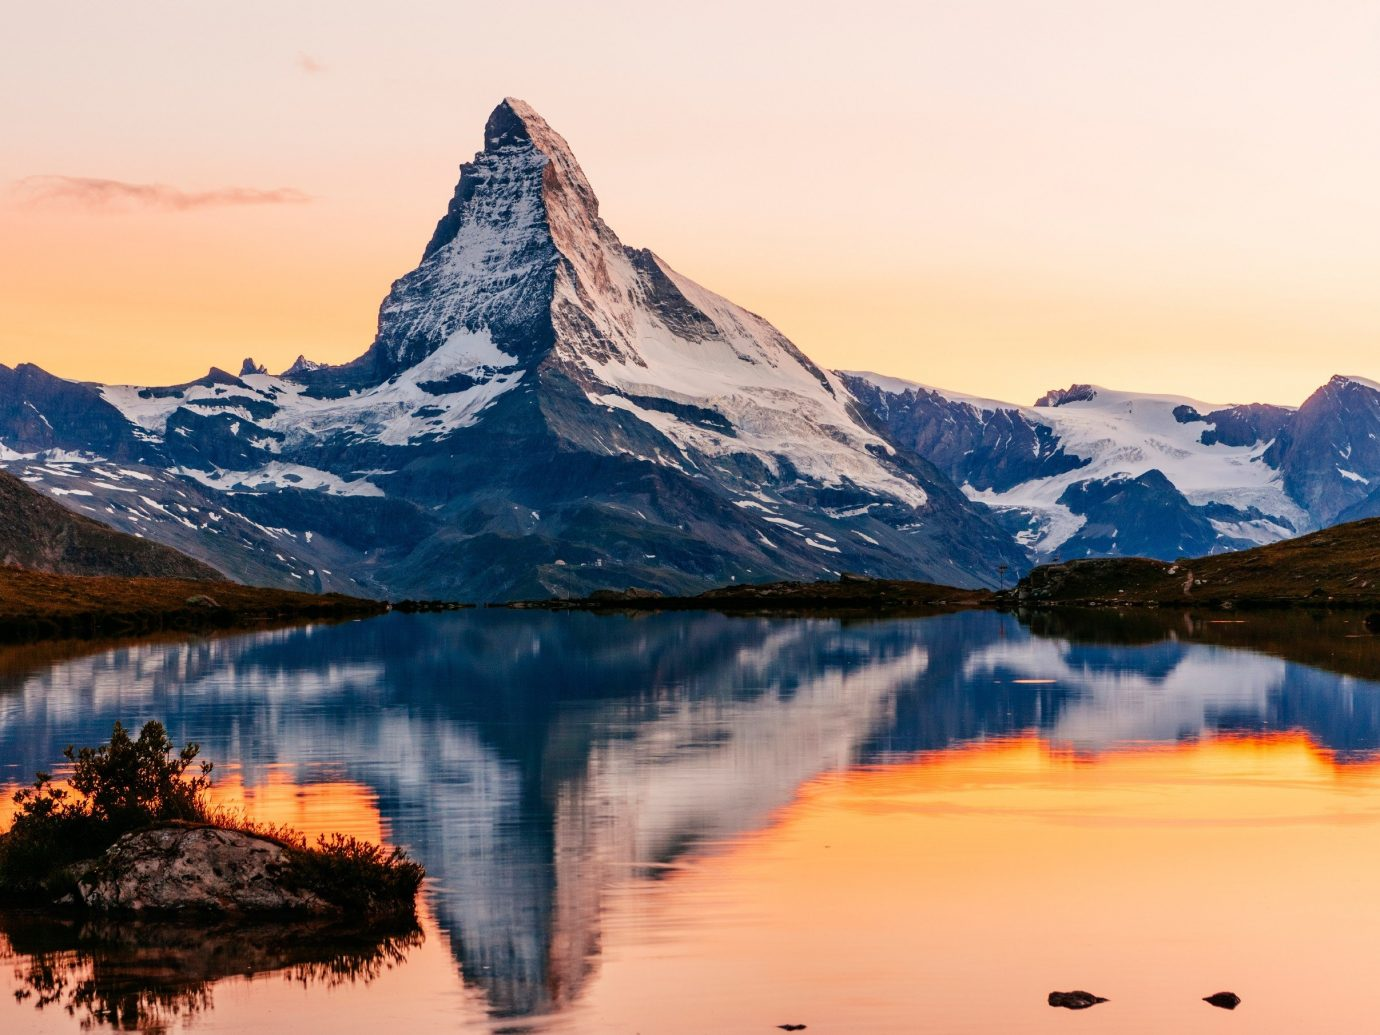 Trip Ideas mountain sky snow outdoor mountainous landforms reflection Nature landform atmospheric phenomenon wilderness Lake sunrise dawn cloud morning loch Sunset mountain range Winter background dusk landscape evening Sea ice overlooking distance